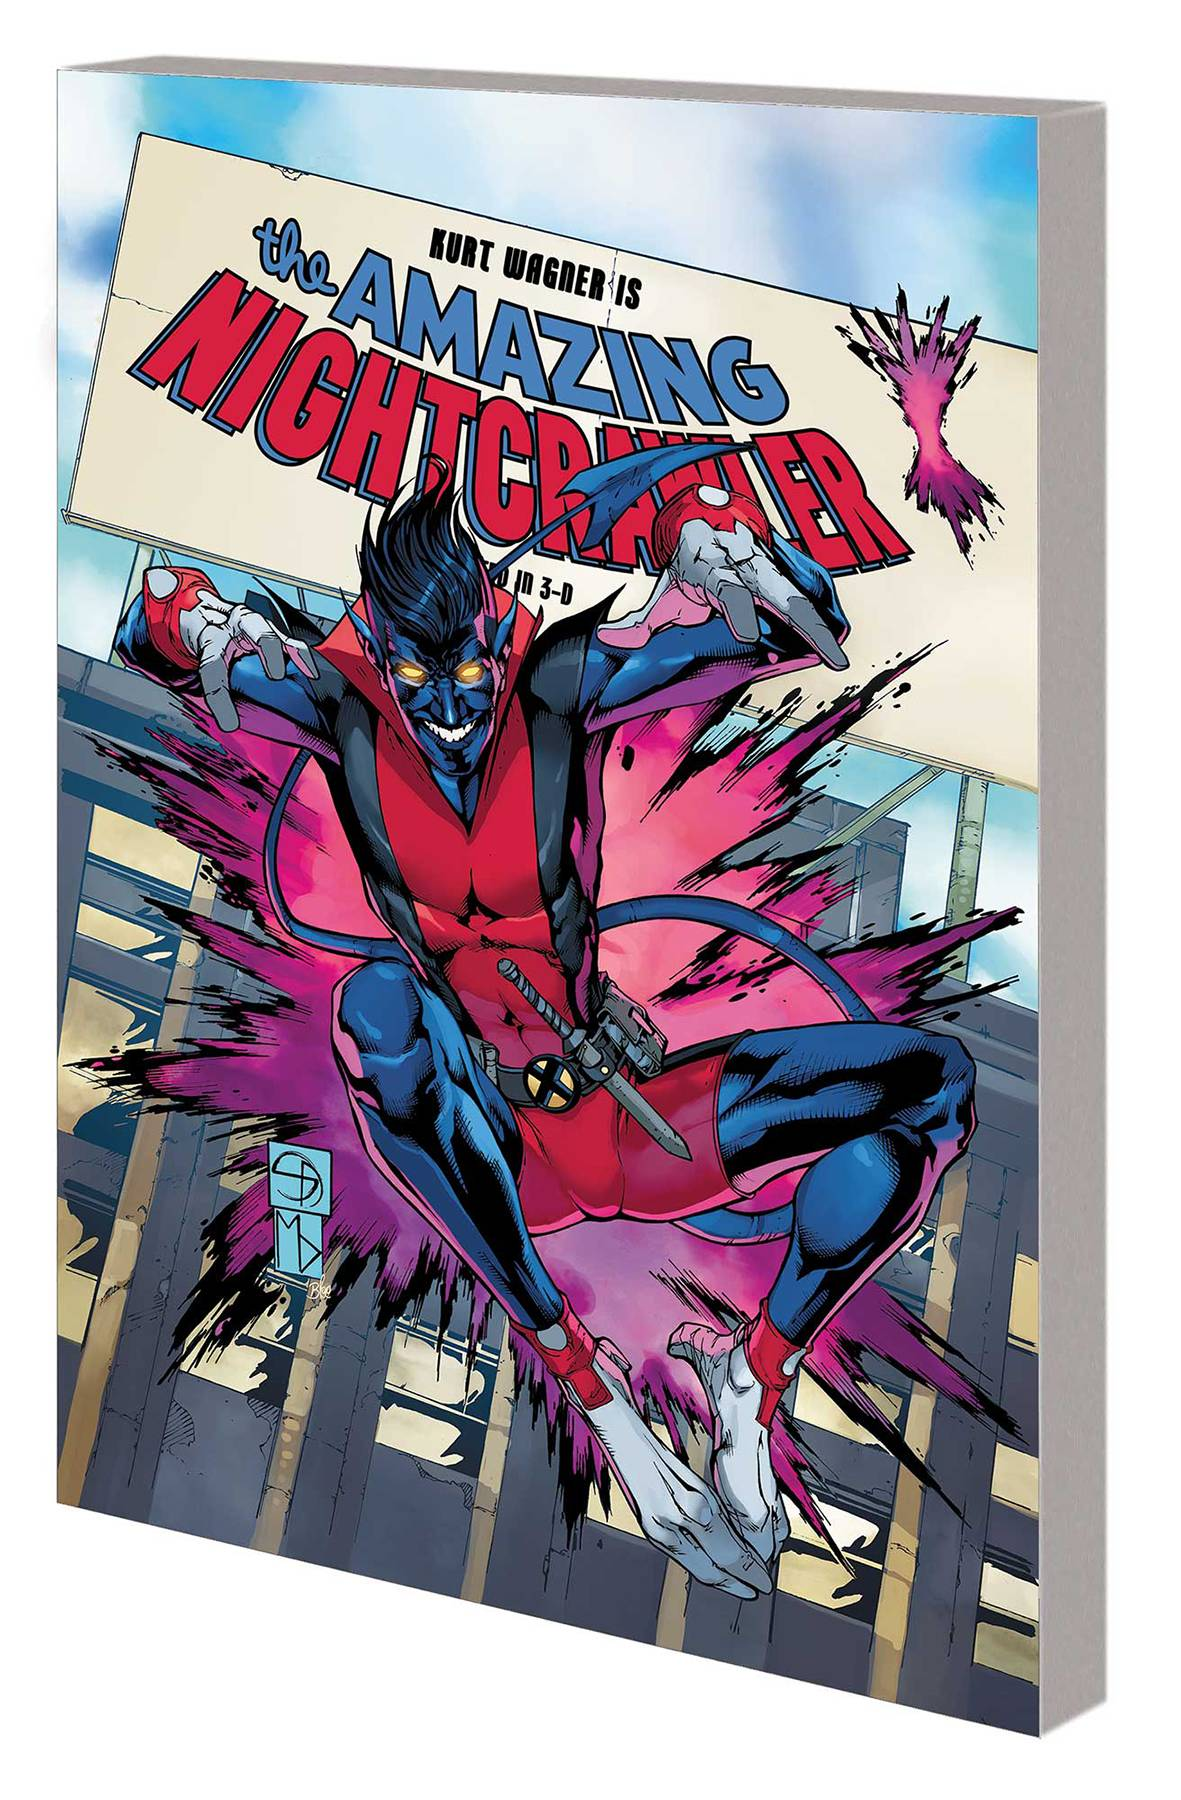 AGE OF X-MAN AMAZING NIGHTCRAWLER TP.jpg